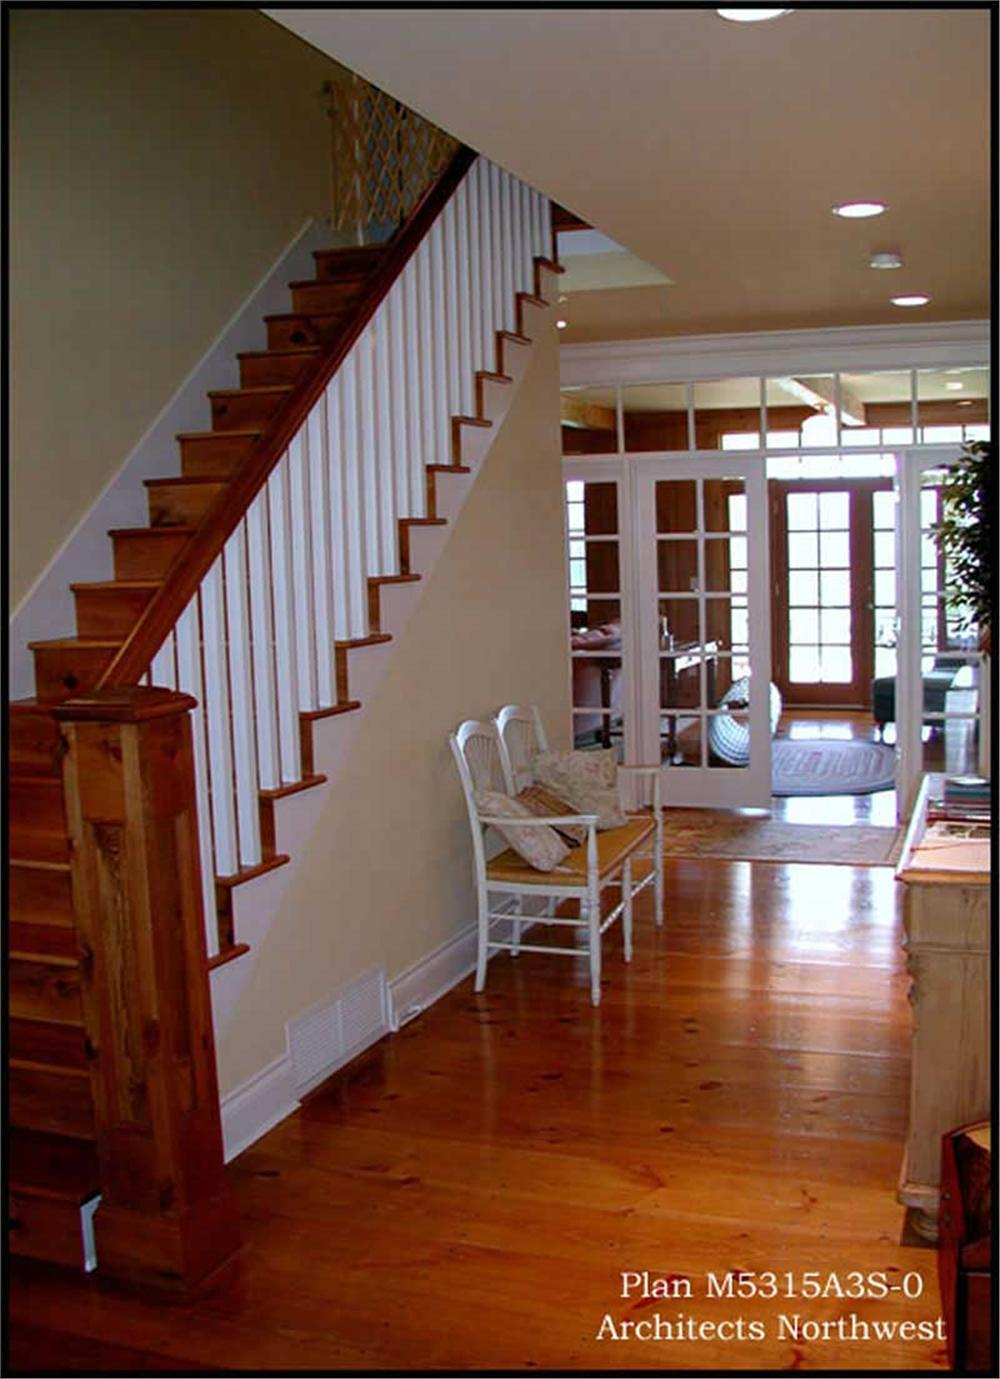 Entry foyer of this farmhouse